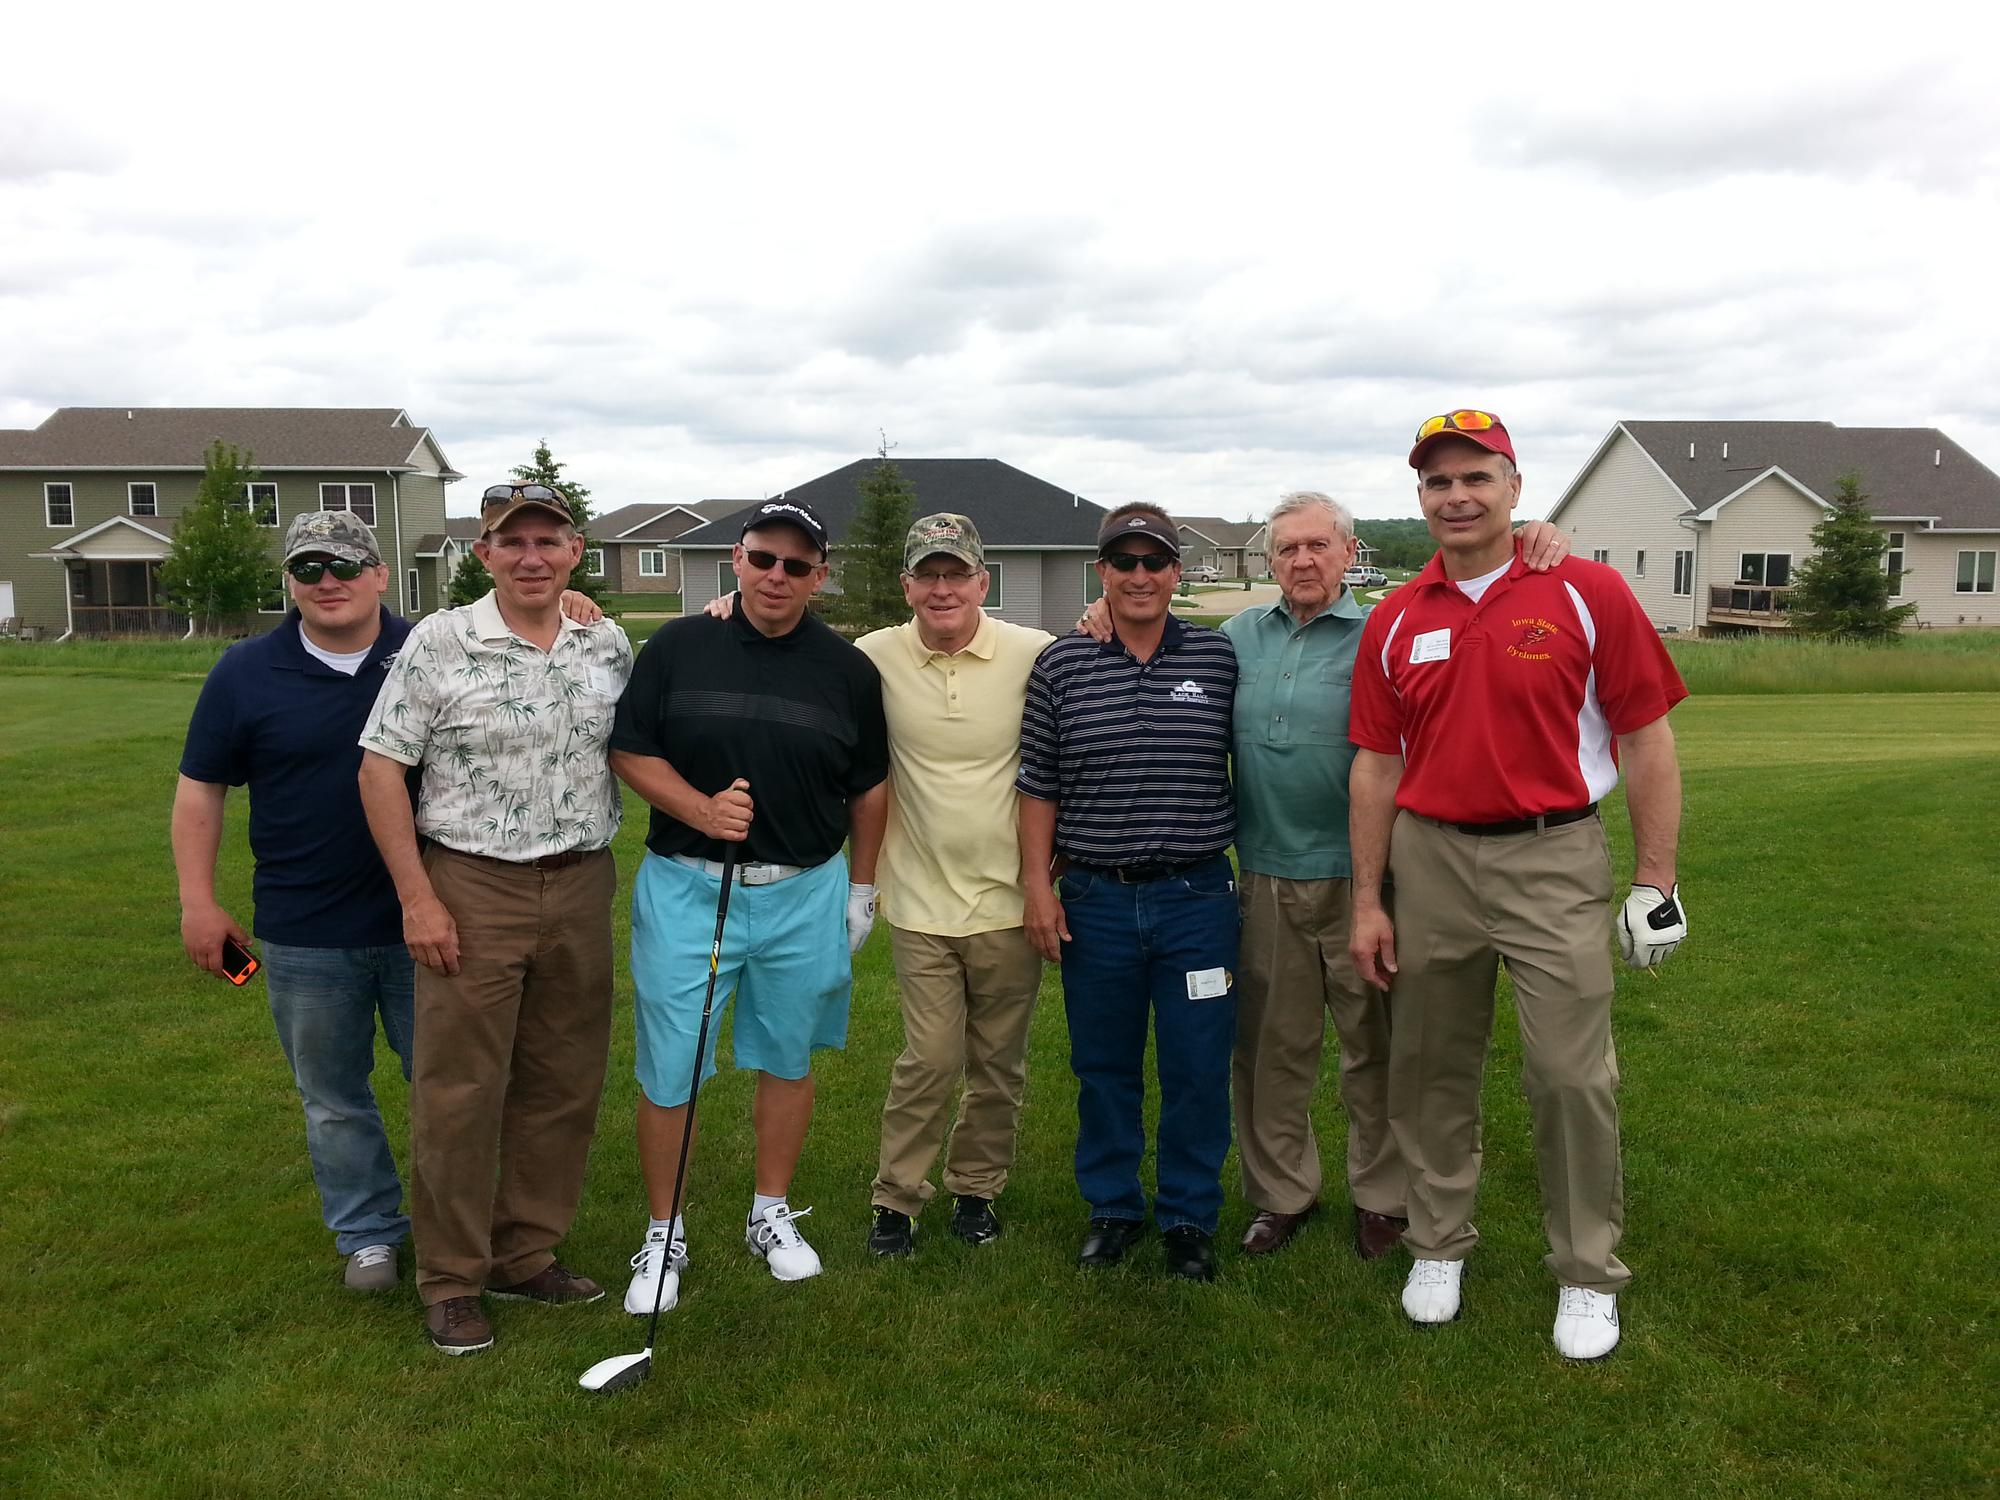 Waverly (IA) United States  city photos gallery : ... Gable Celebrity Golf Tournament Tickets in Waverly, IA, United States